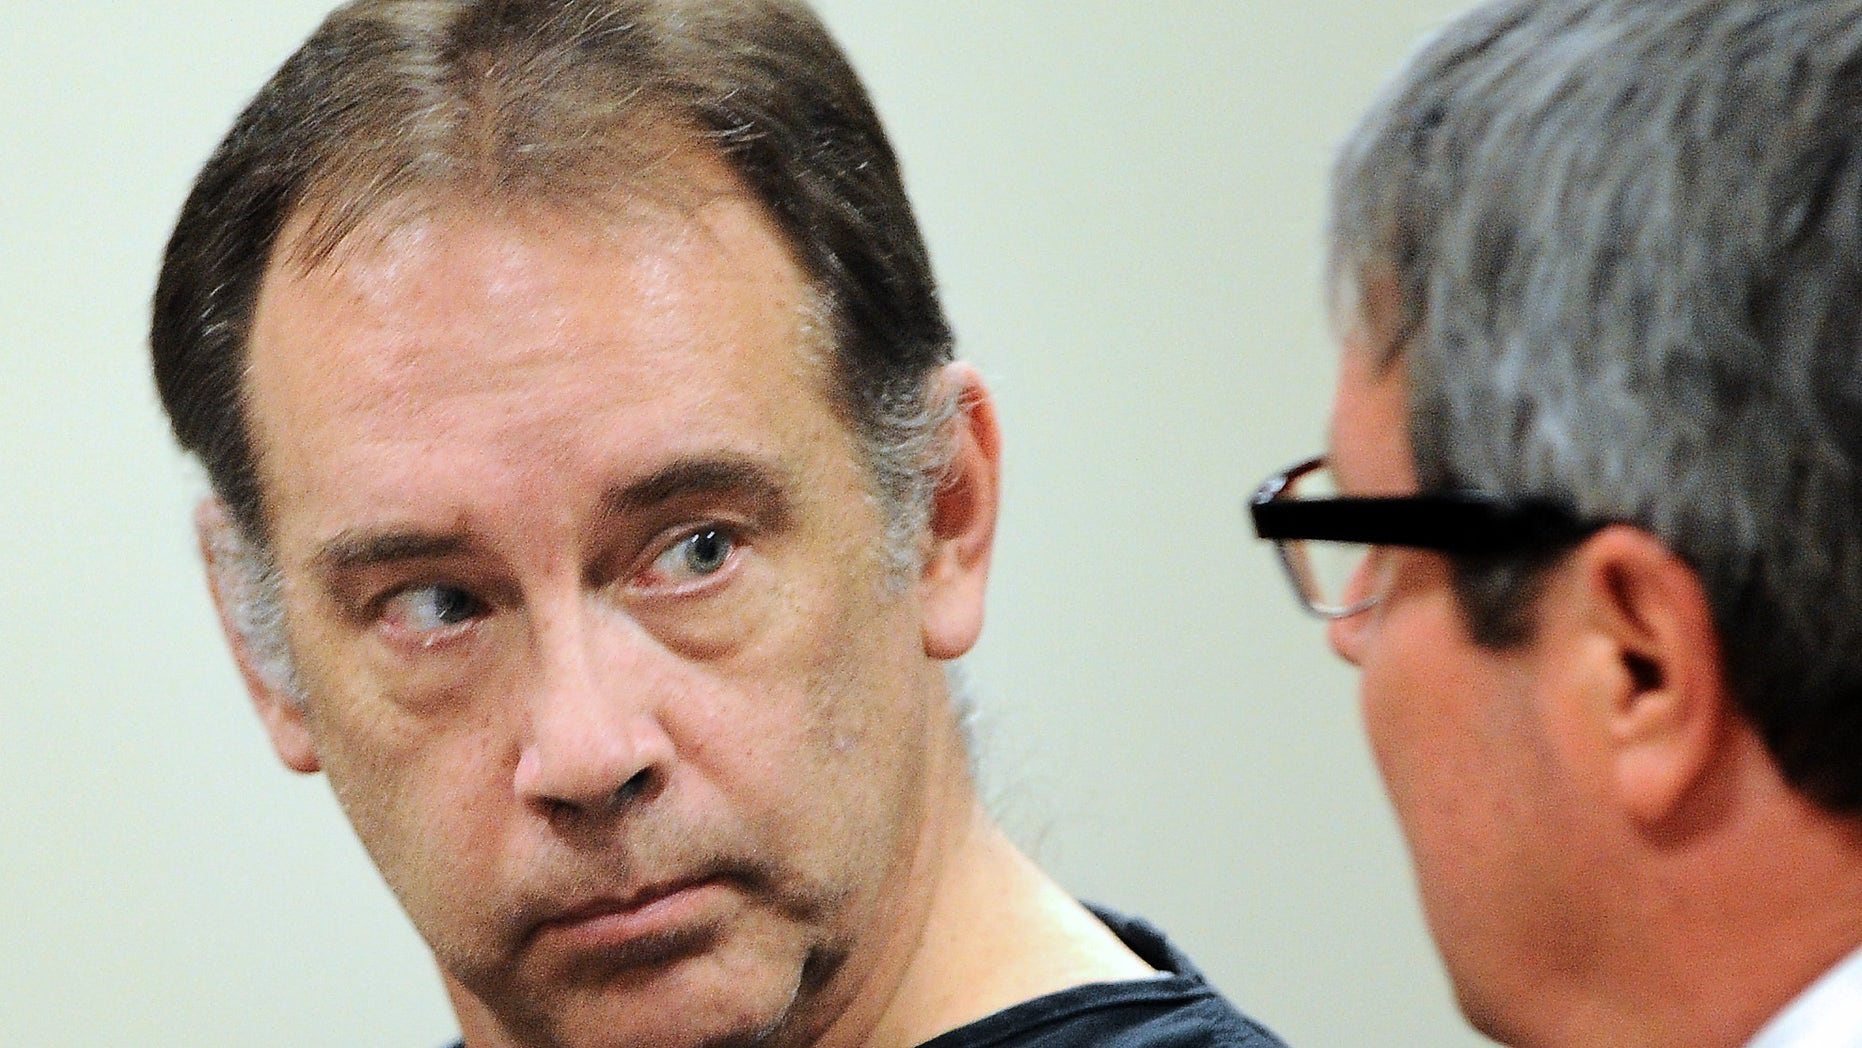 Aug. 5, 2014: Steven Zelich appears in court in Kenosha, Wis.